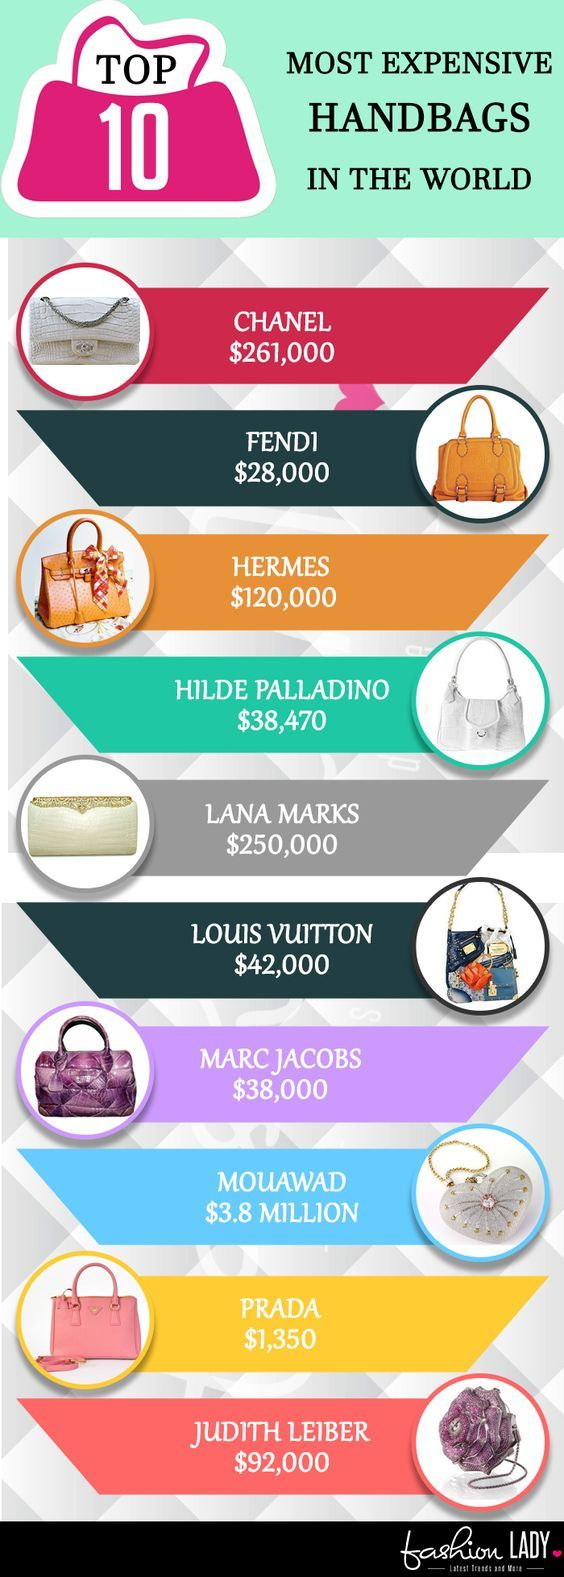 Here is the list of top most expensive handbag in the world. This list has expensive purses from may top handbag brands like Louis Vuitton, Marc Jacobs, Judith Leiber, Prada.